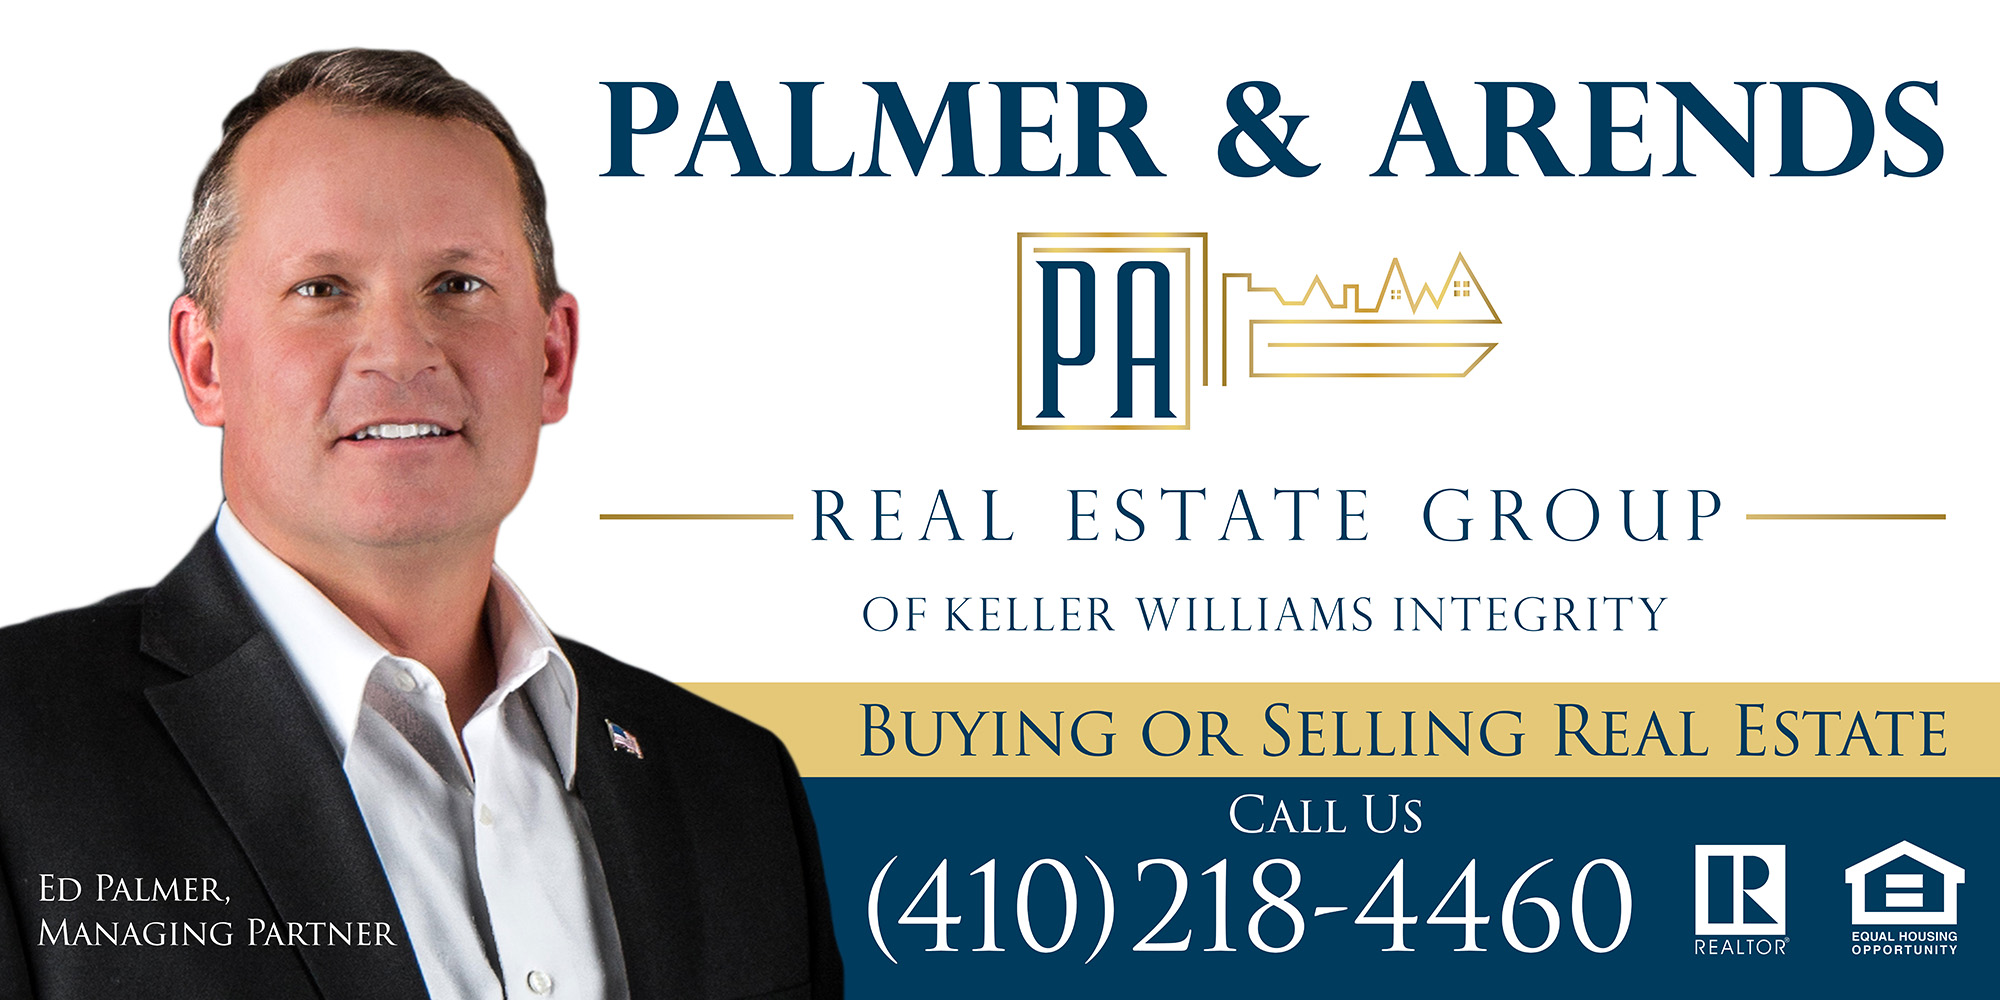 The Palmer and Arends Group